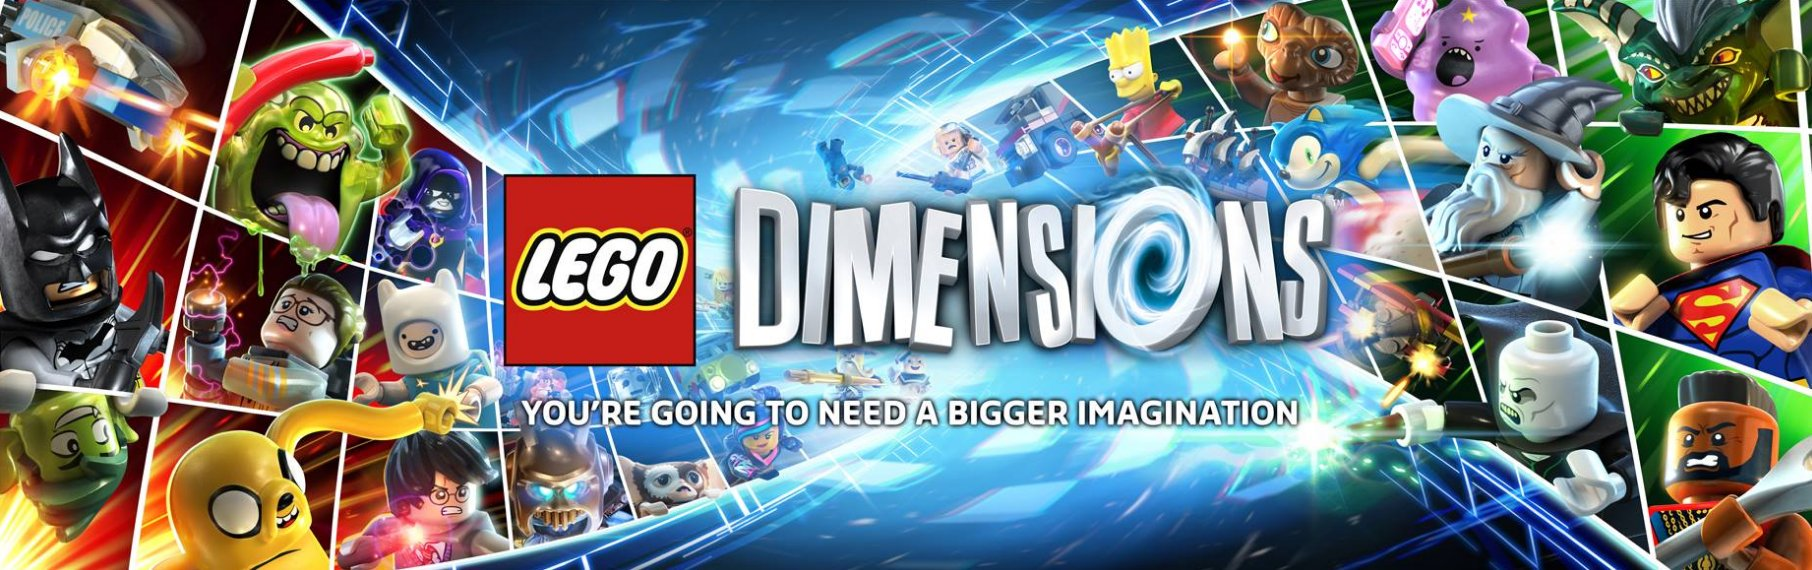 Video Spotlight Sonic The Hedgehog To Appear In Lego Dimensions Segadriven